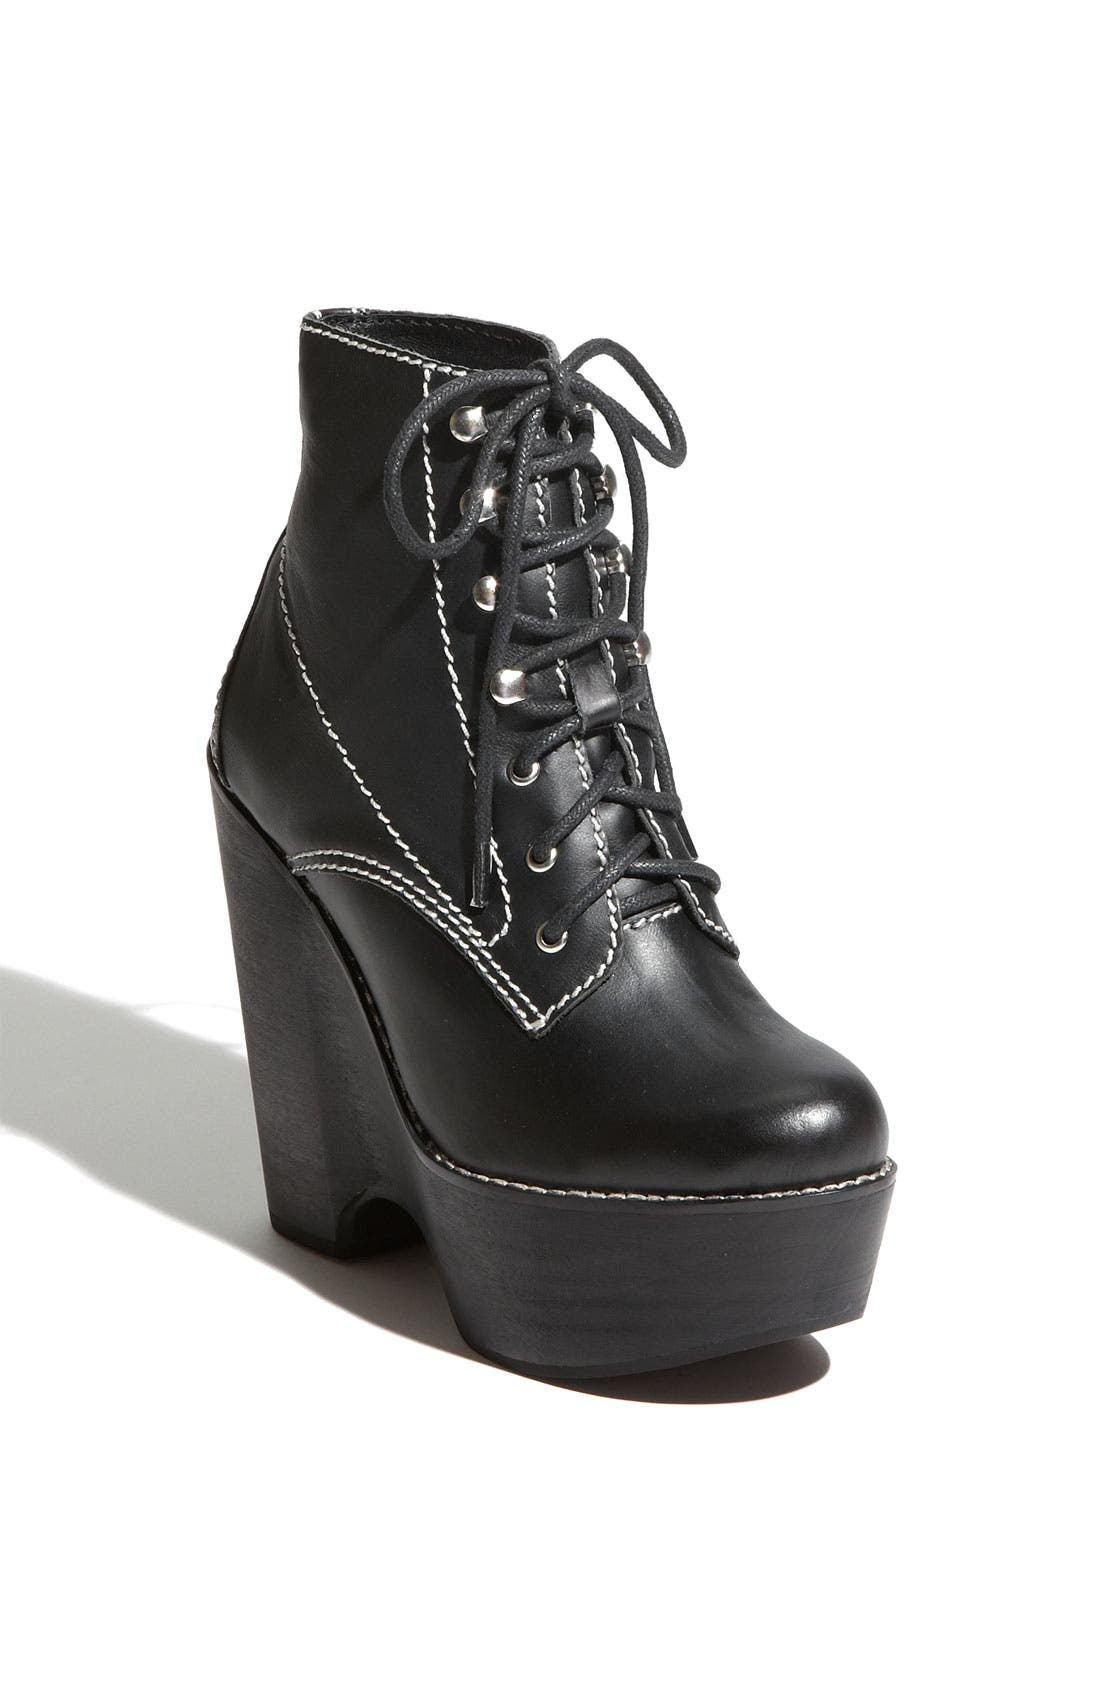 Alternate Image 1 Selected - Jeffrey Campbell 'Tardy' Boot